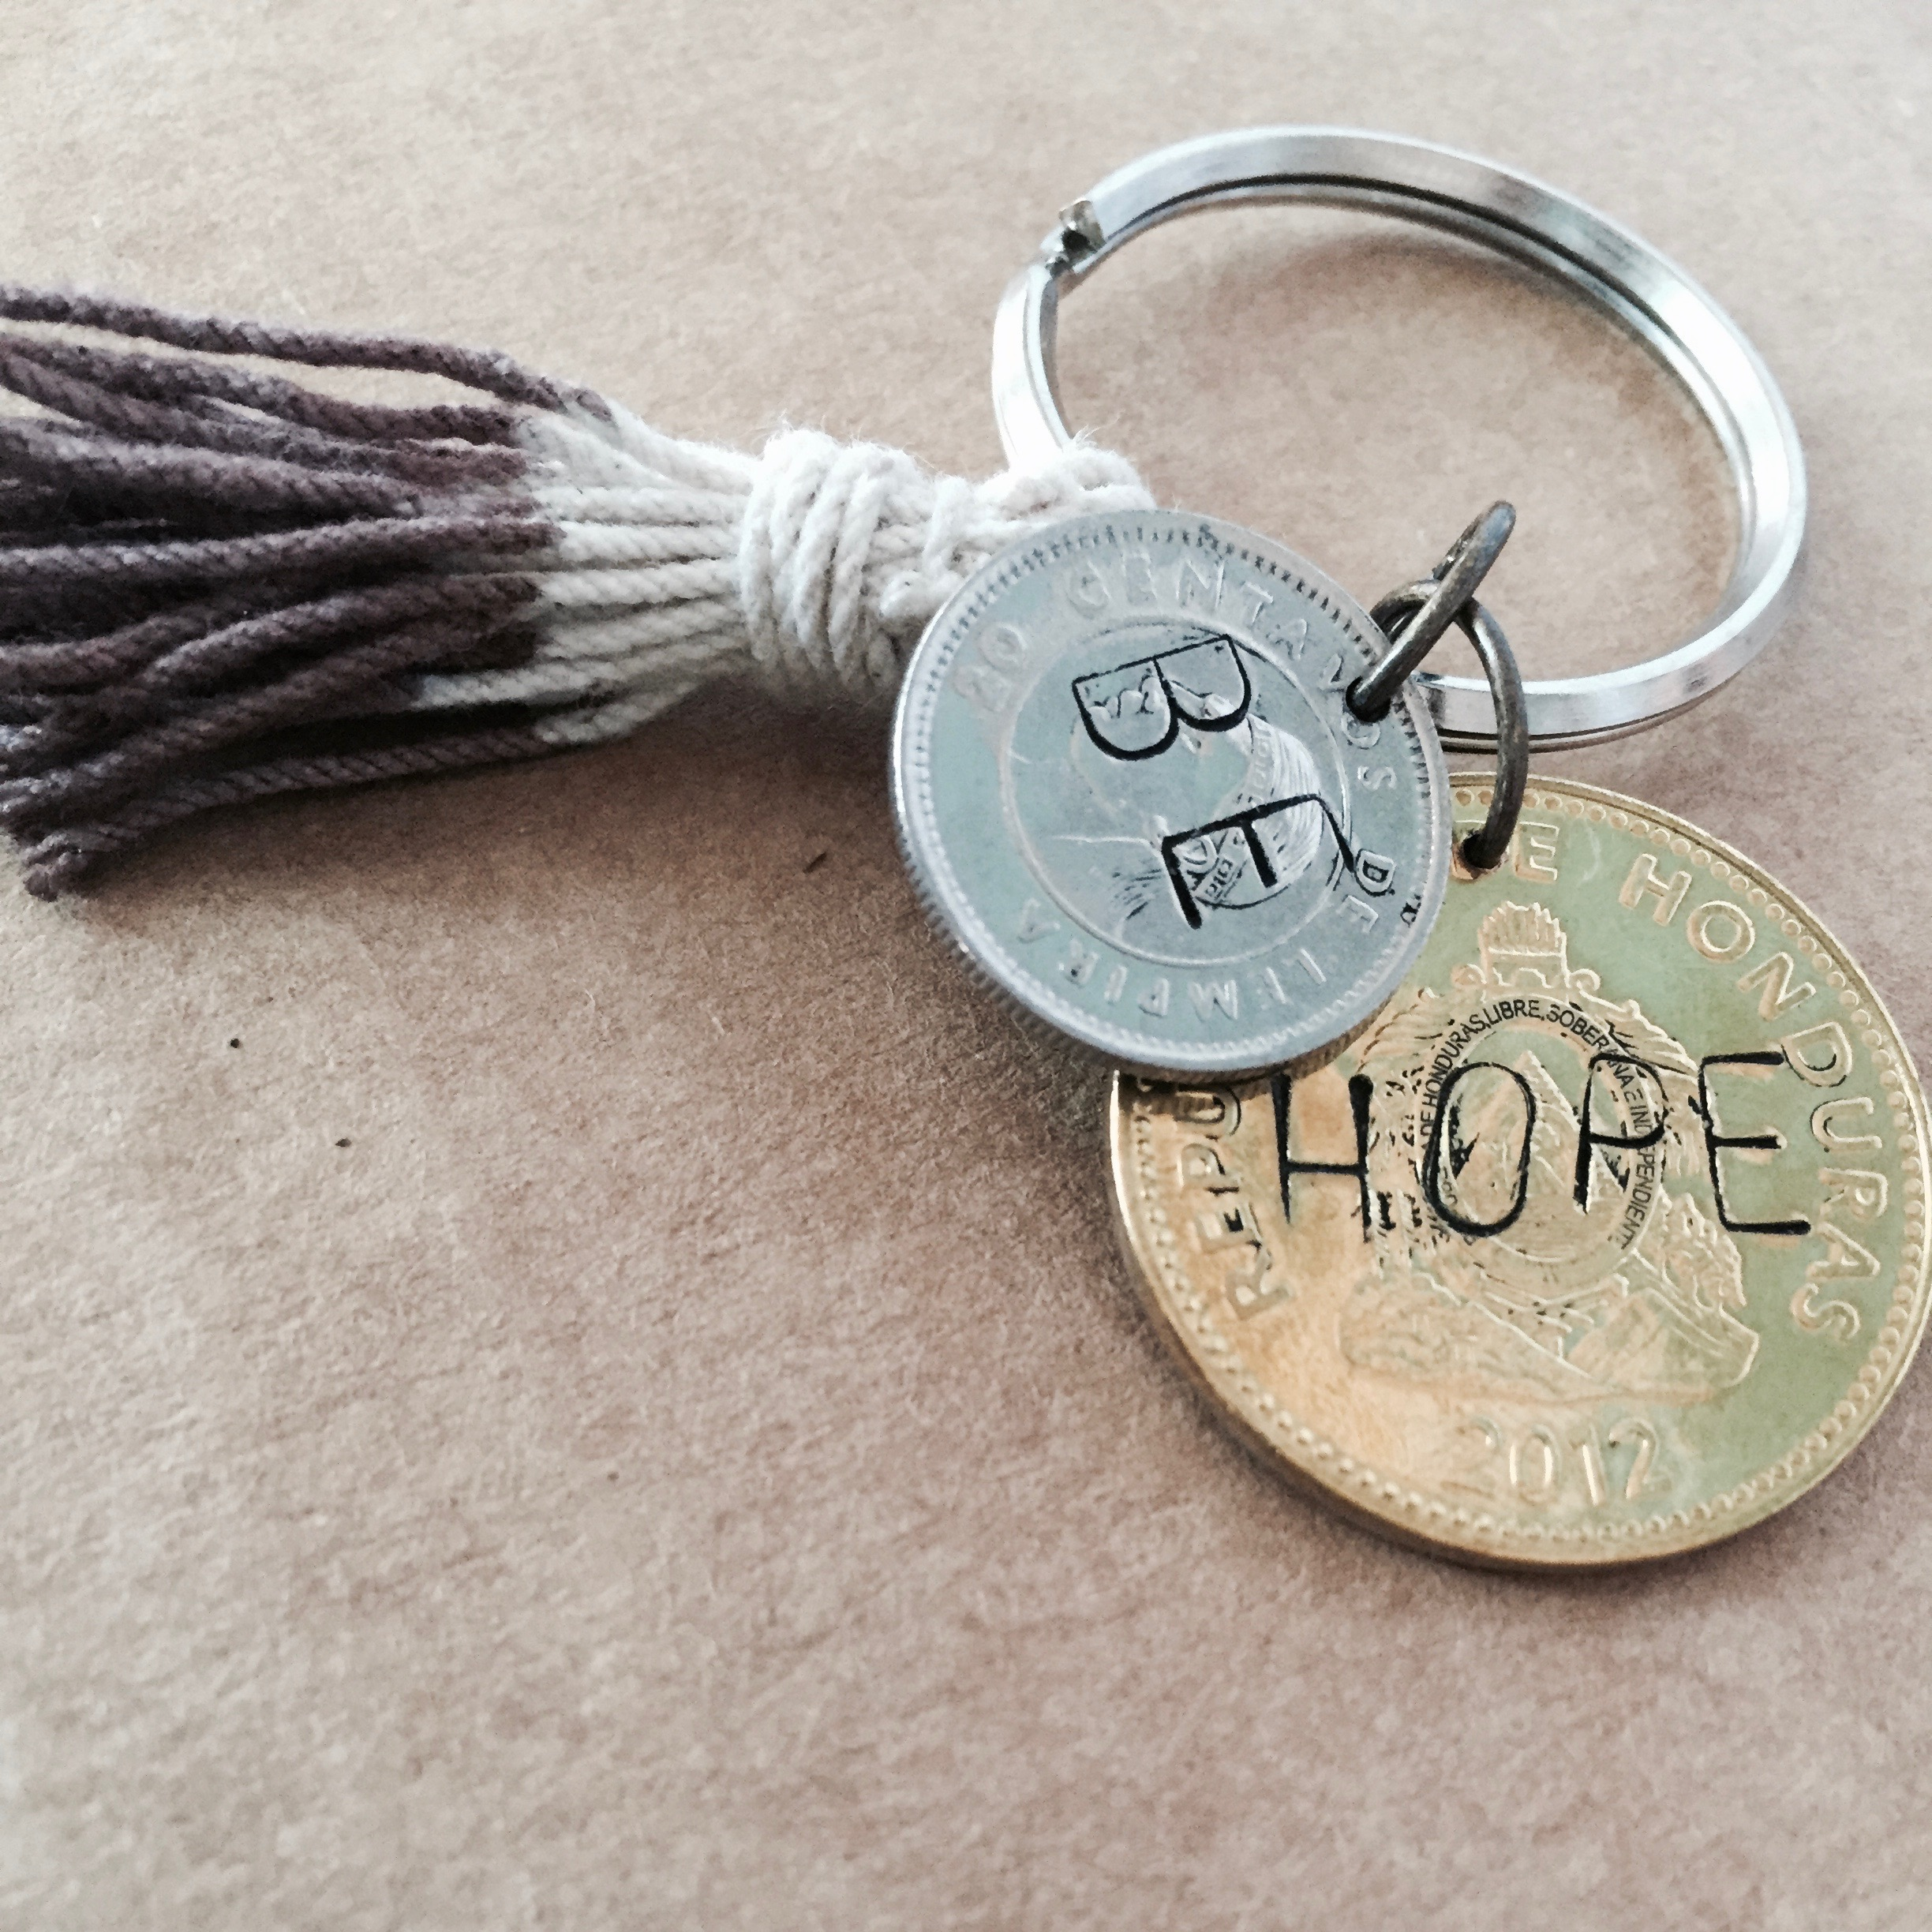 2016 Summer Campaign {BE HOPE} Key Chain